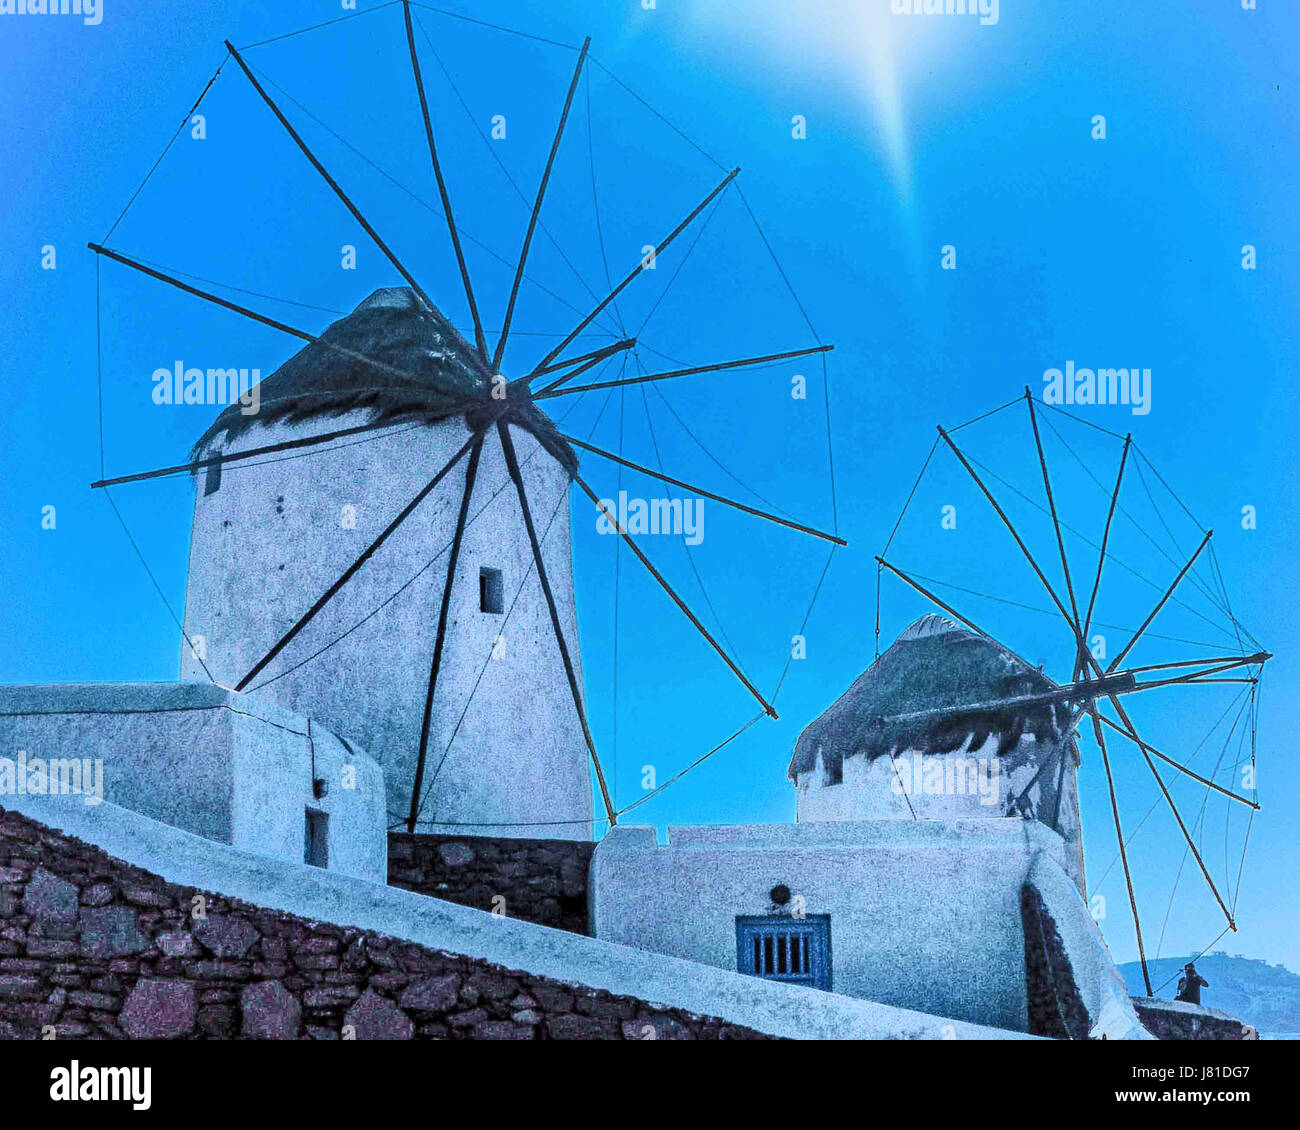 Chora, Mykonos, Greece. 9th Oct, 2004. The famous iconic windmills (Kato Mili) in Chora, Mykonos, on a hill overlooking Stock Photo